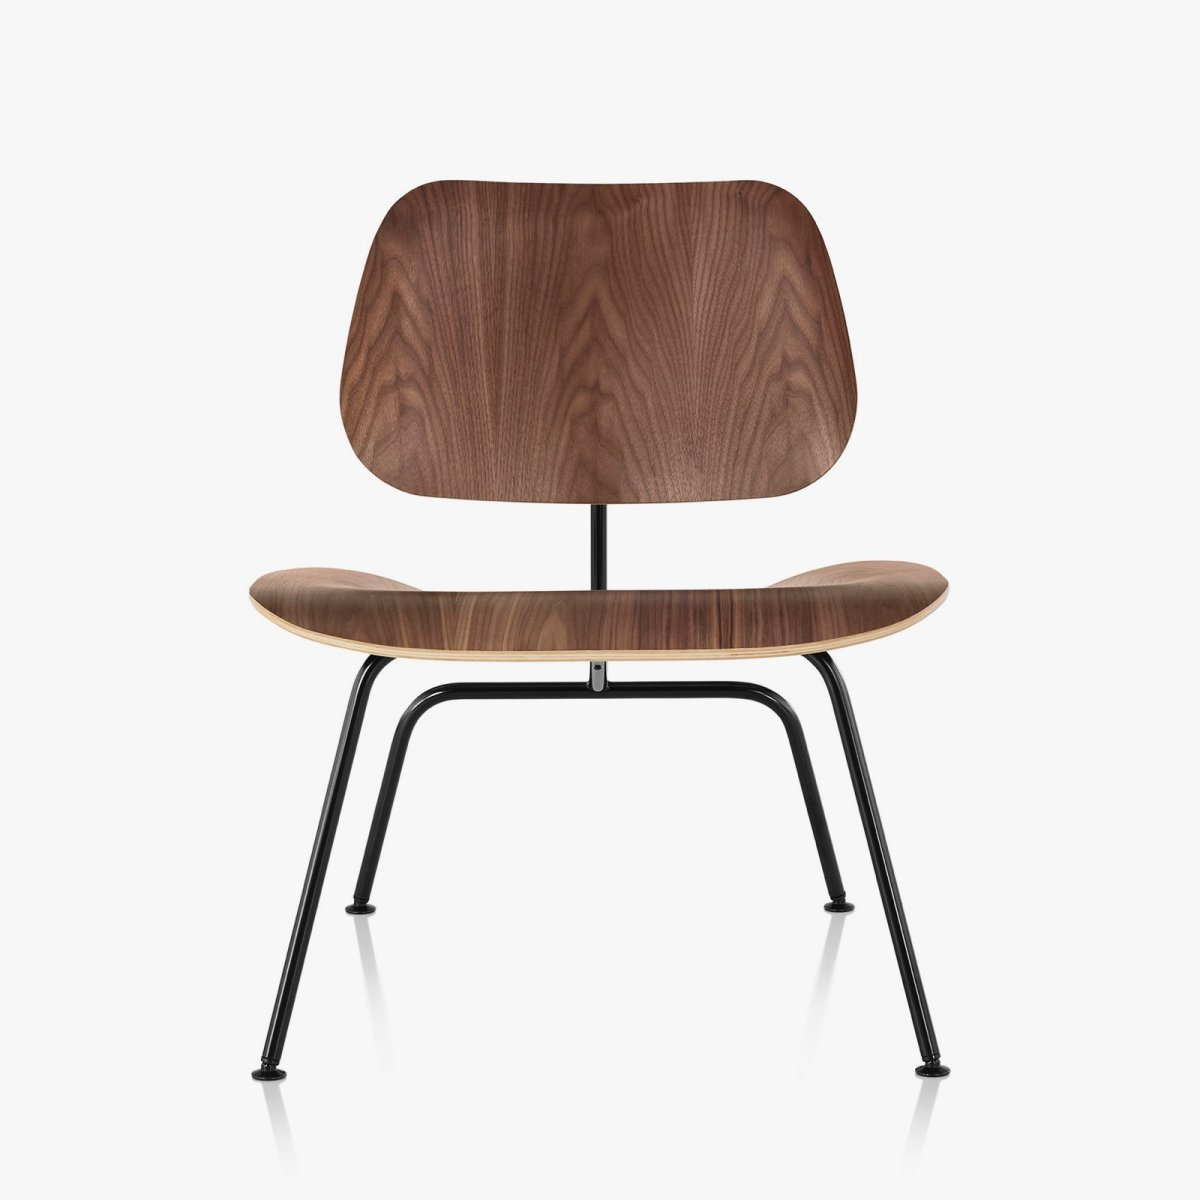 Eames Molded Plywood Lounge Chair Metal Base, walnut + black, front view.